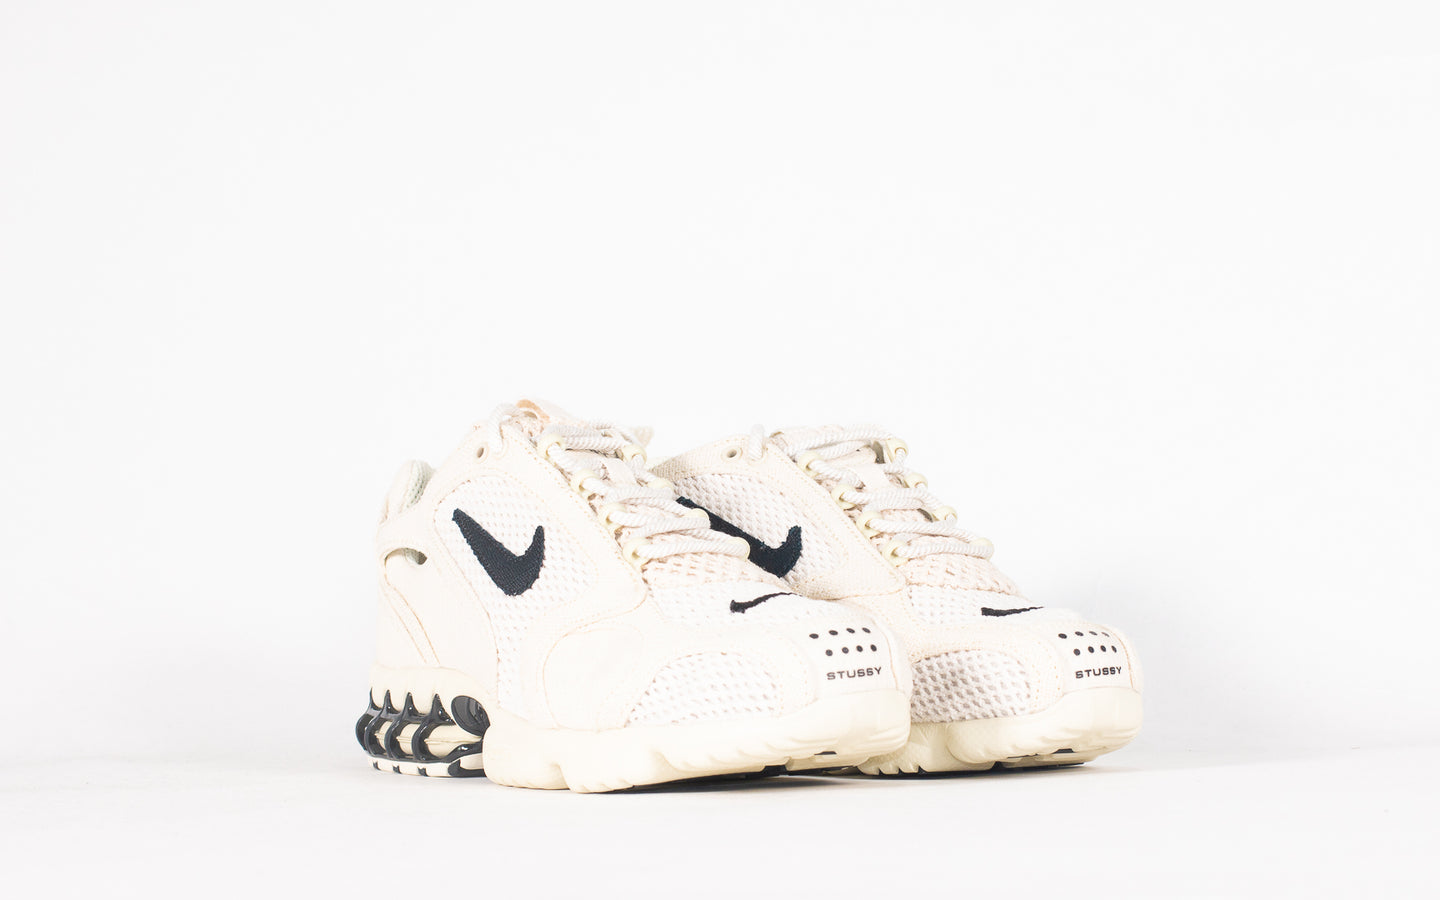 Air Zoom Spiridon Cage 2 x Stussy 'Fossil' (New)